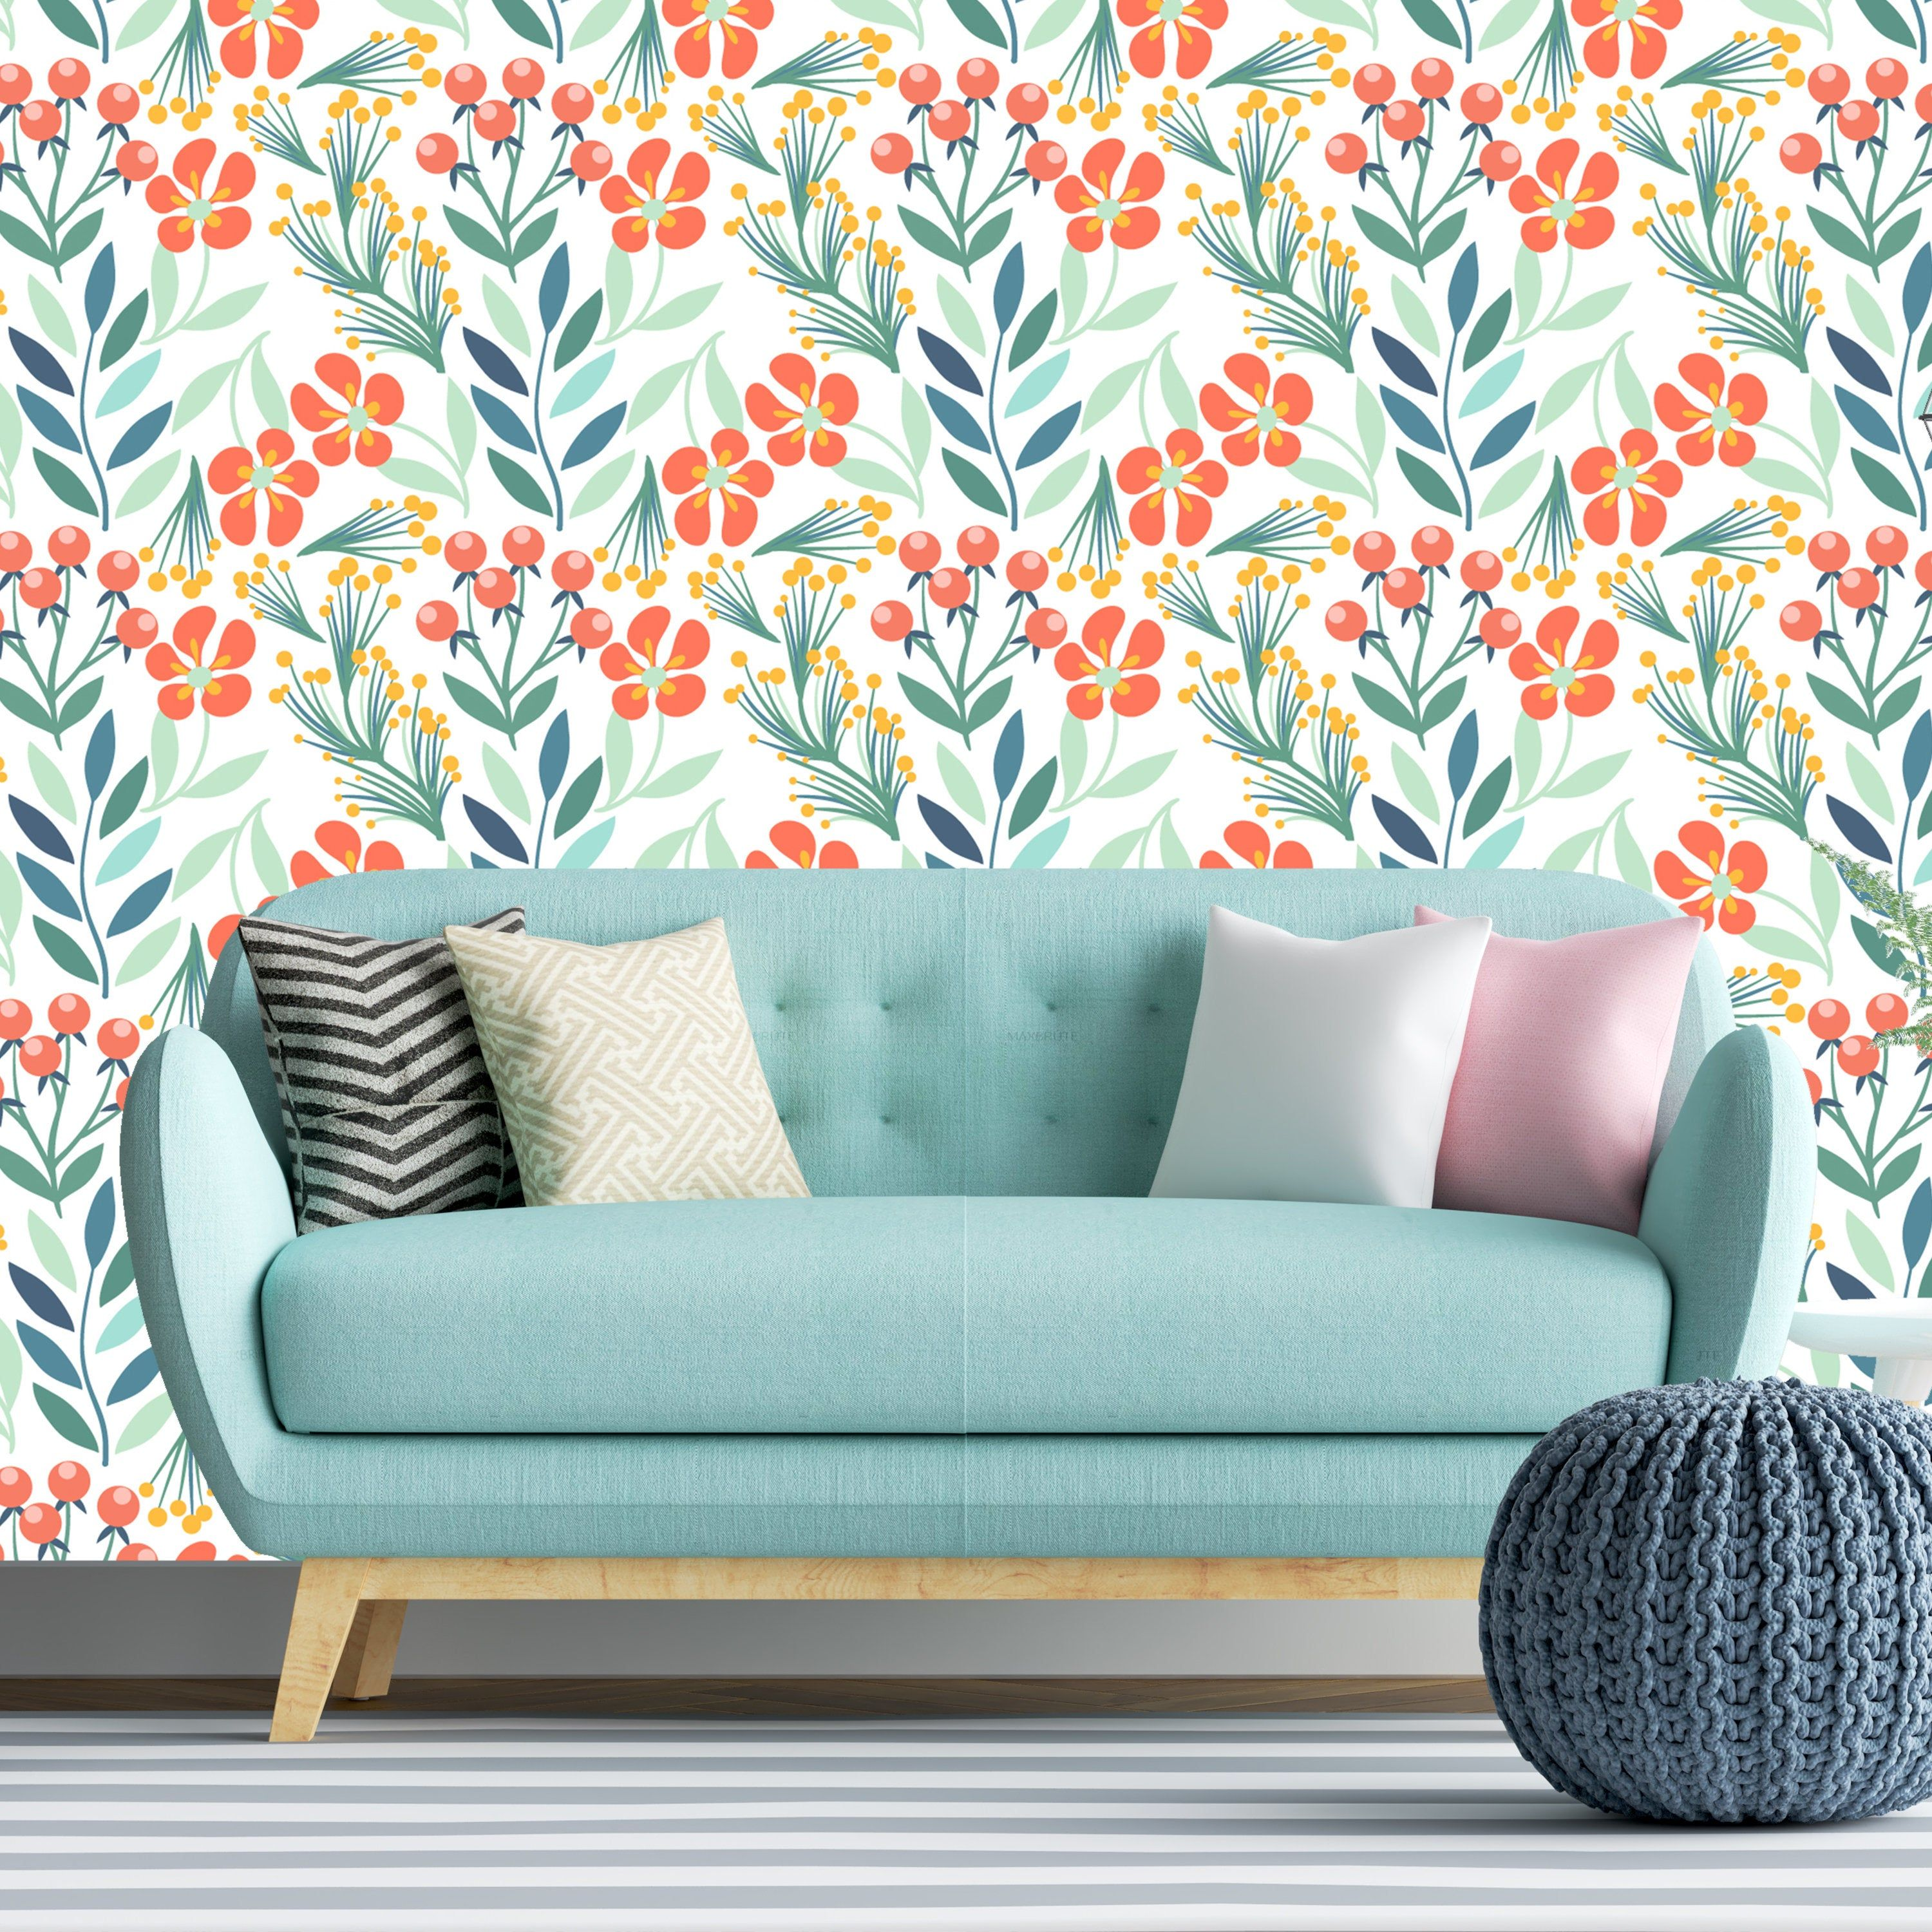 Removable Wallpaper Blue Orange Autumn Wild Meadow Flowers Etsy Accent Wall Removable Wallpaper Nursery Wallpaper